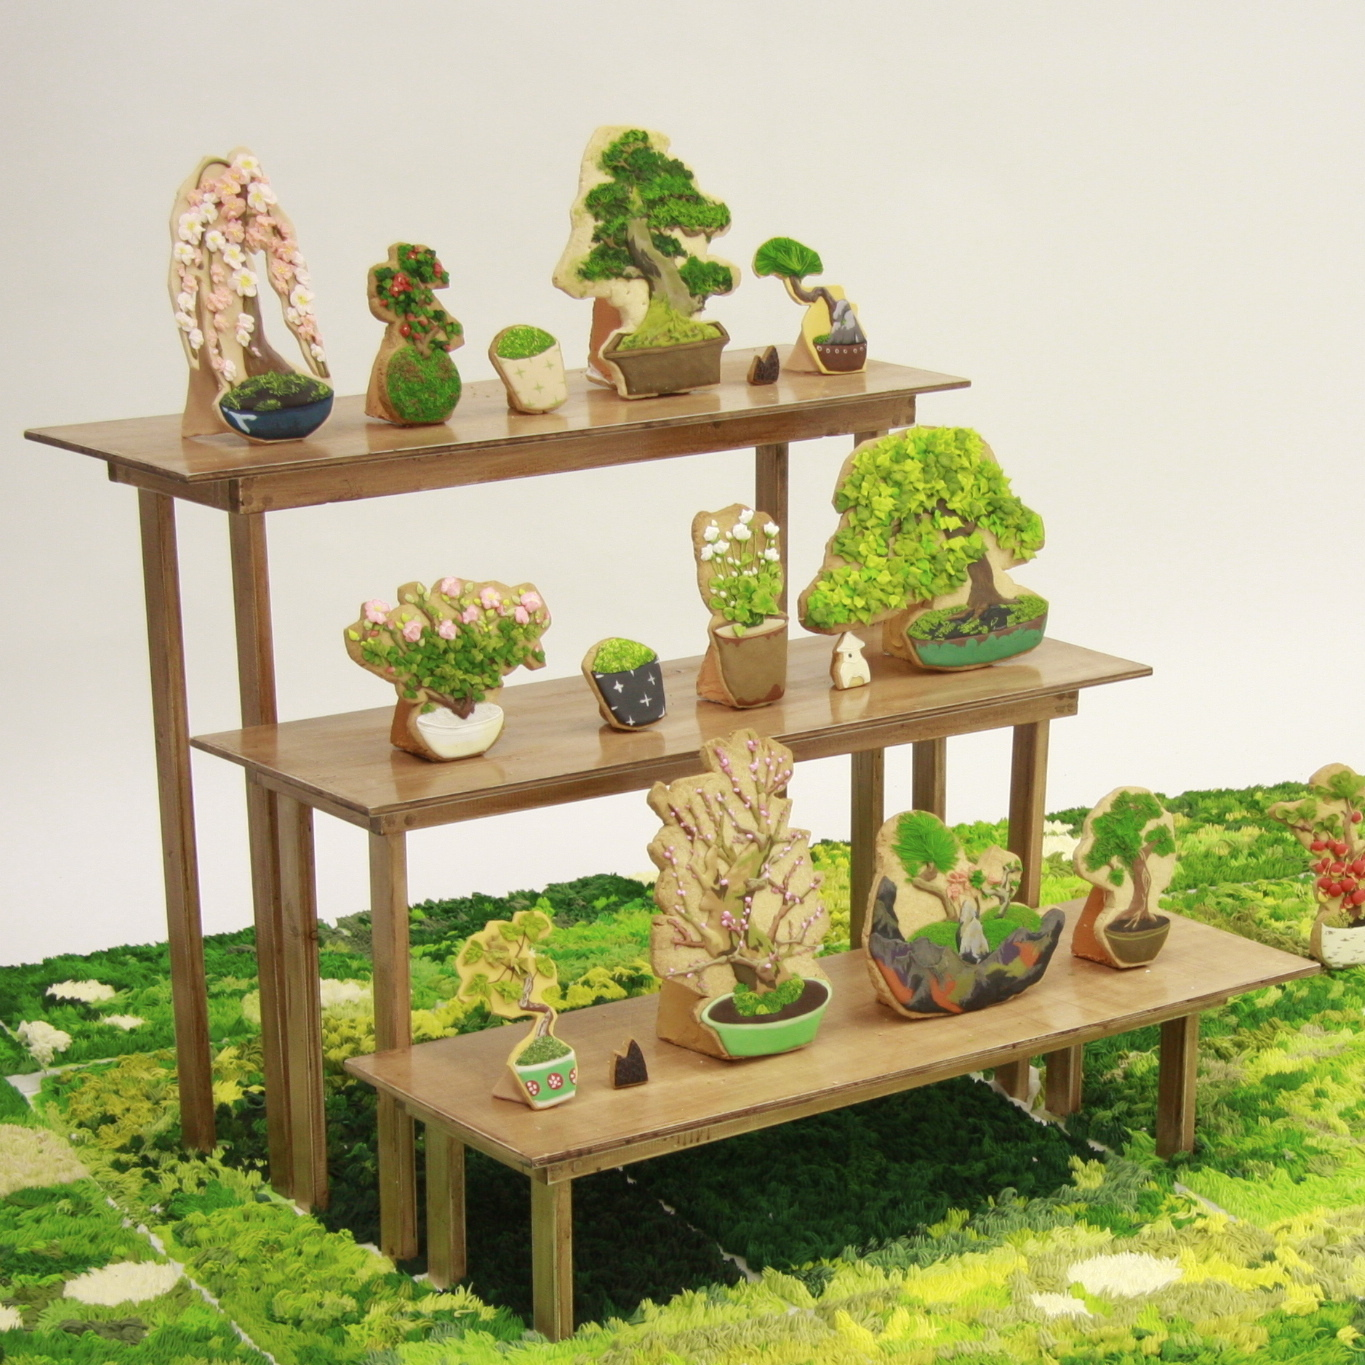 An assortment of Risa Hirai's bonsai cookie art